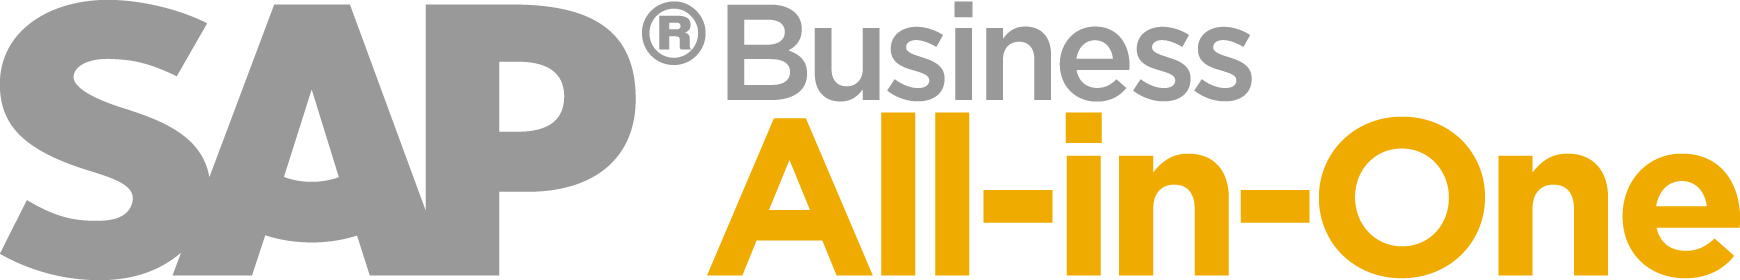 SAP_Business_AiO_C